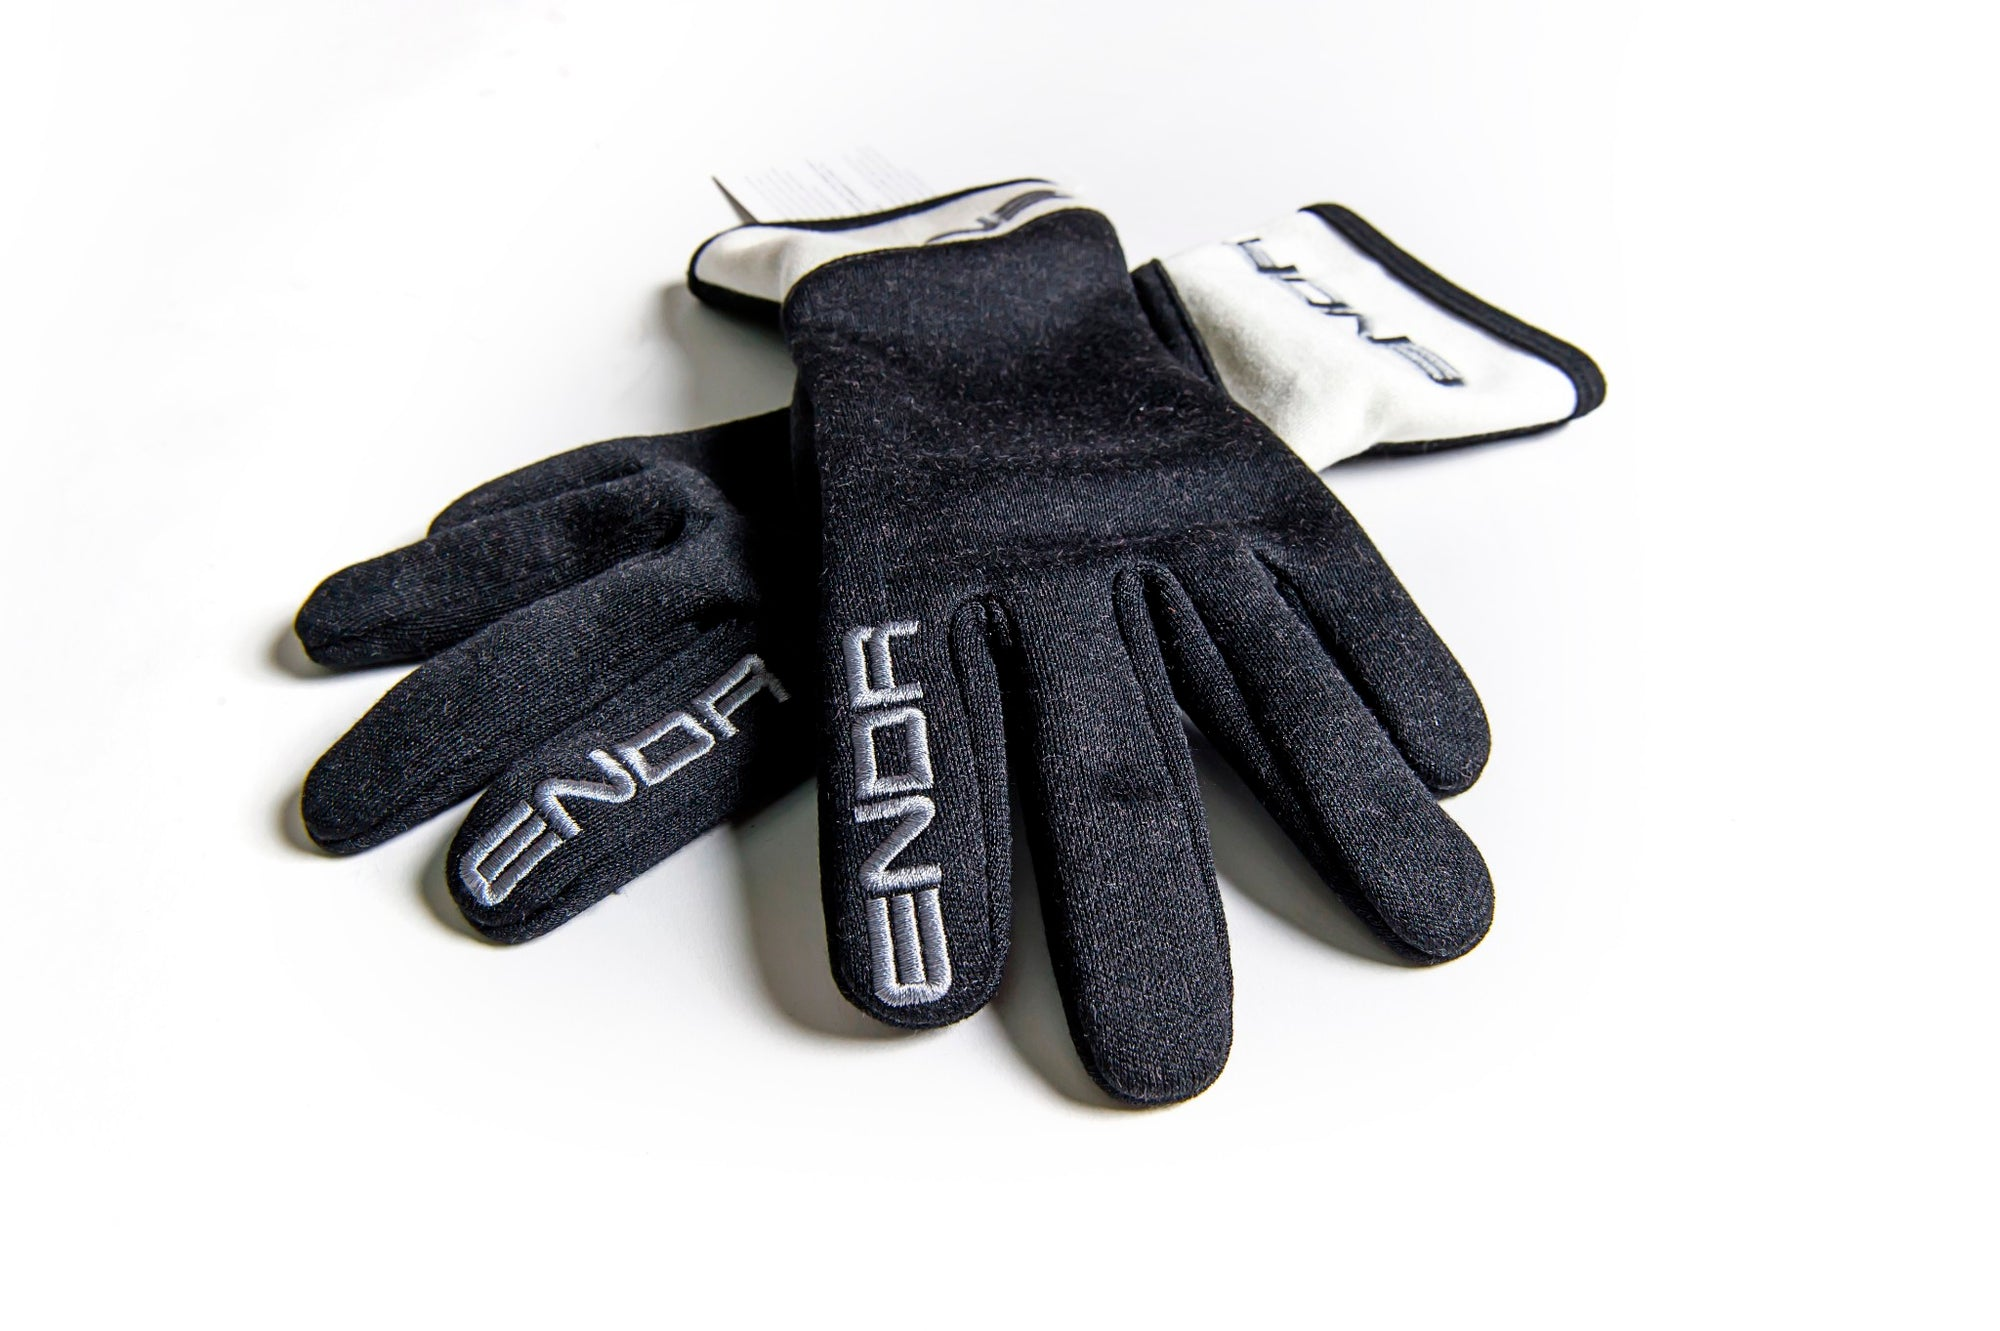 ENDR GRP-1 Race Glove - Inseam